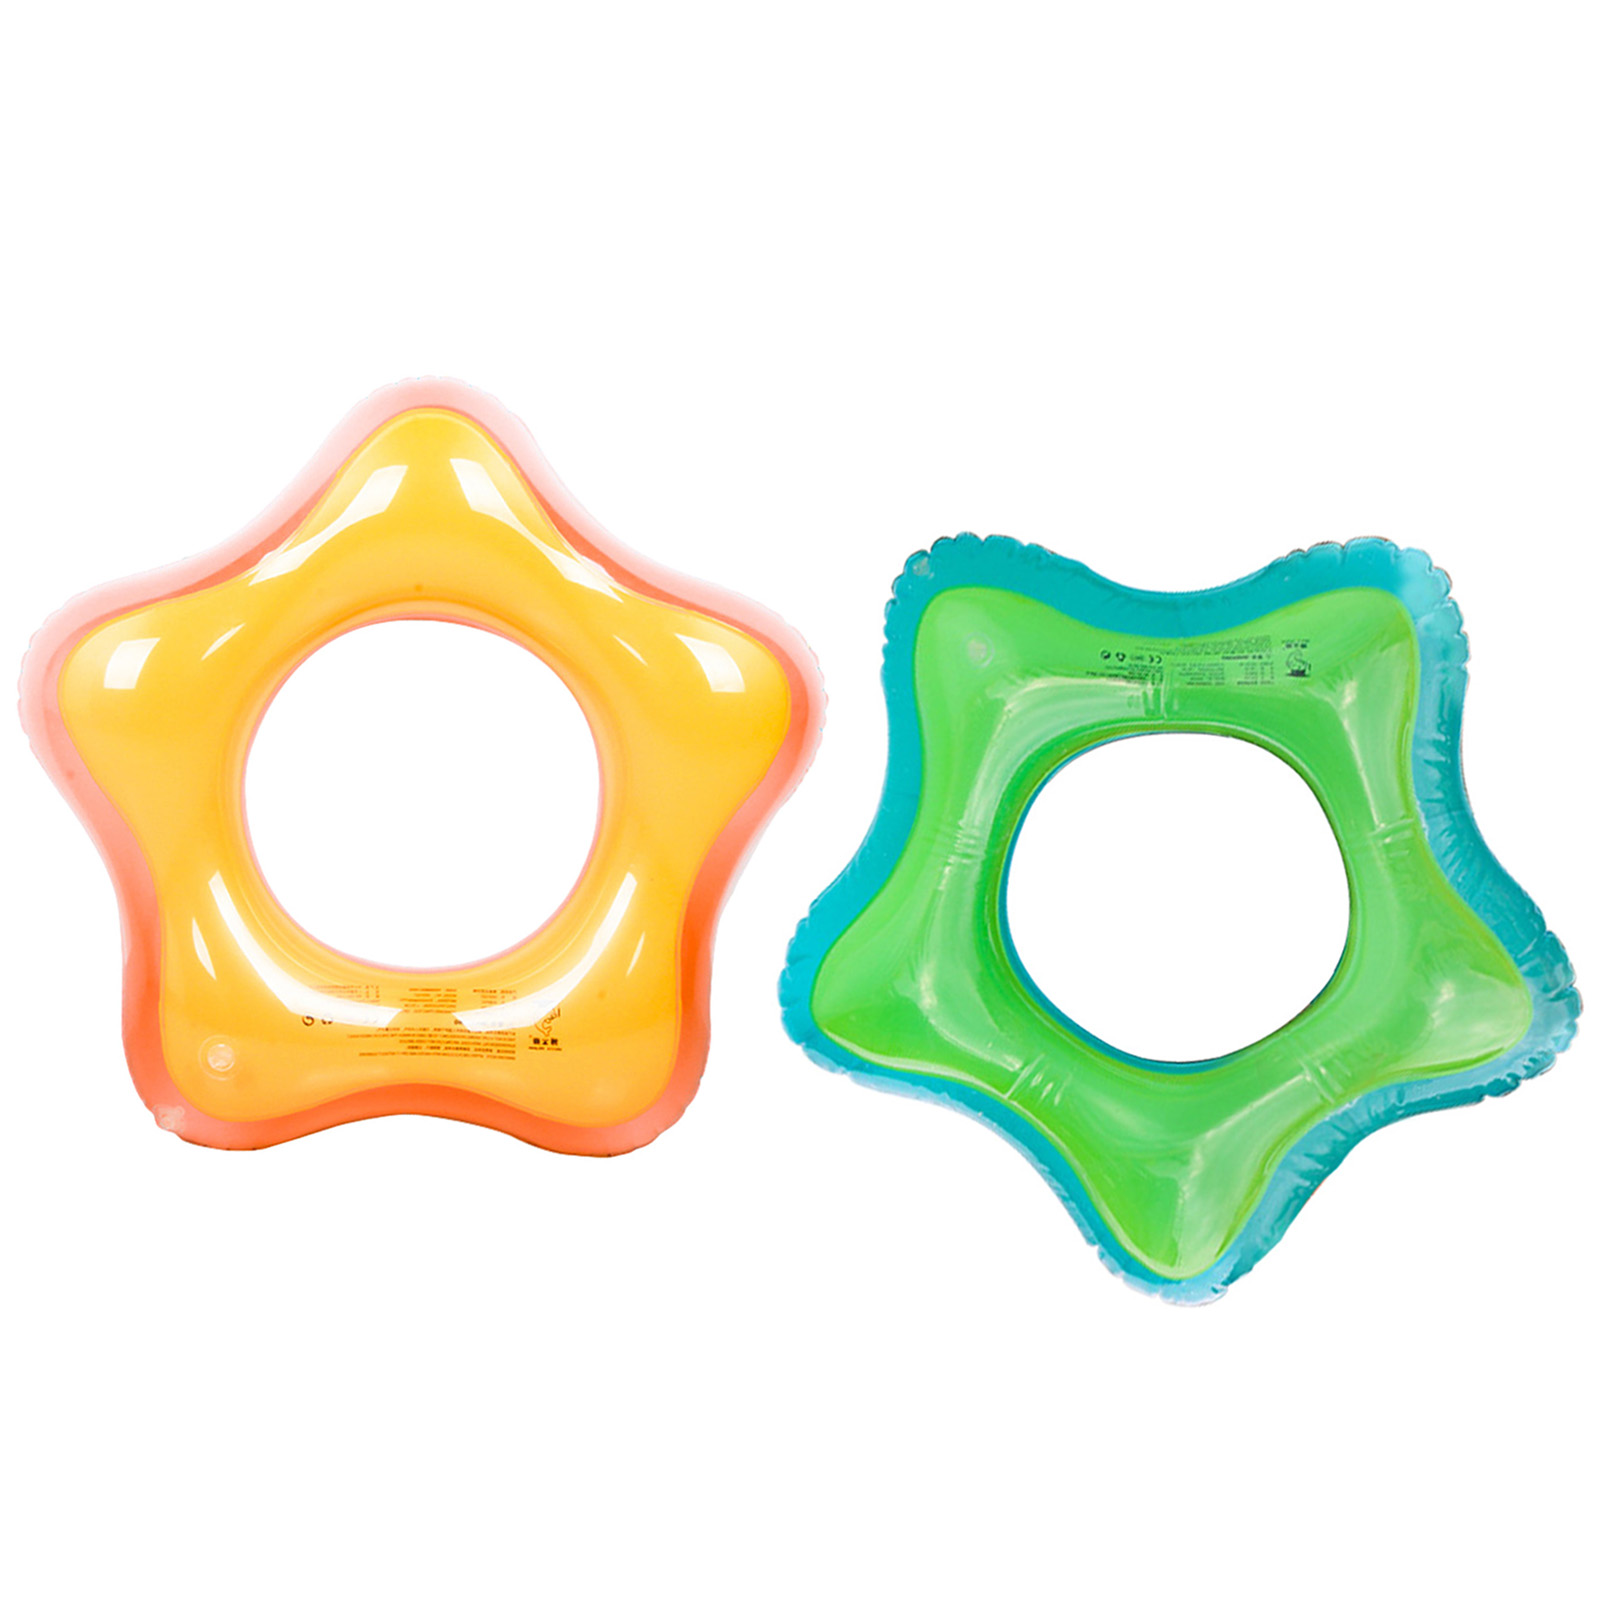 Inflatable Pool Floats Swim Tubes Rings Summer Beach Water Float Star-shaped Inflatable Swimming Rings For Kids Adults